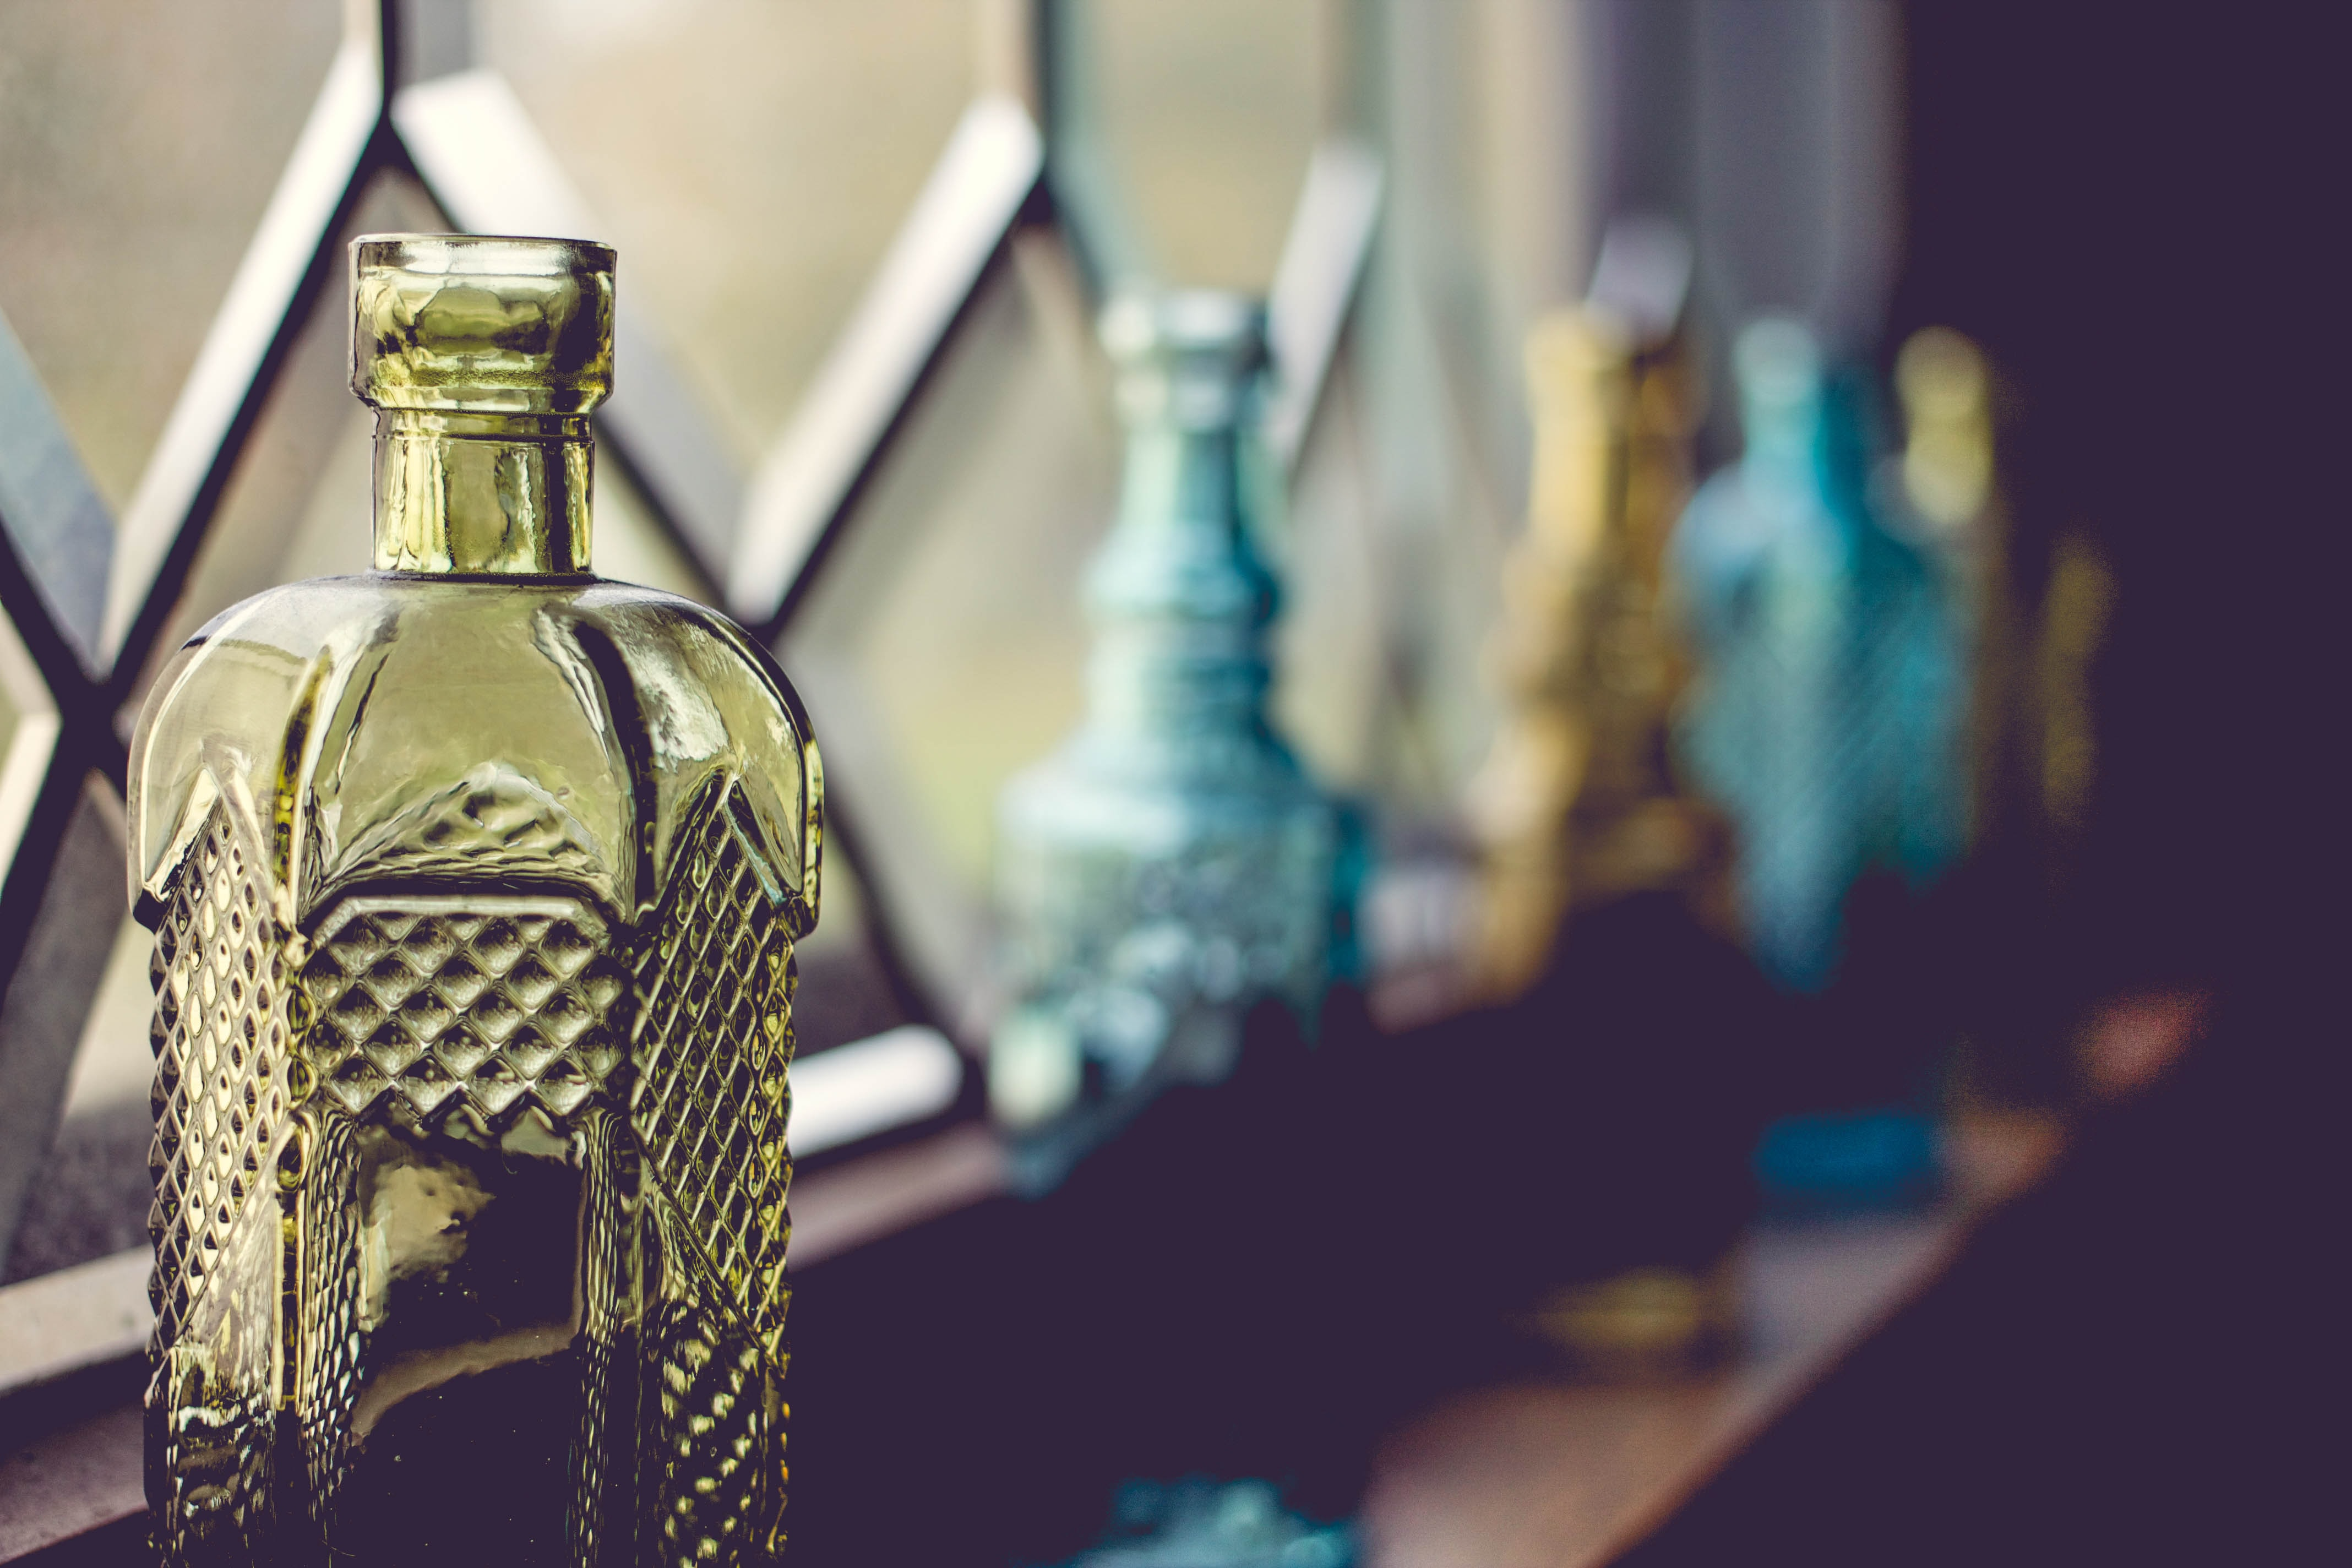 Antique bottles in front of a window and decorative glass panes